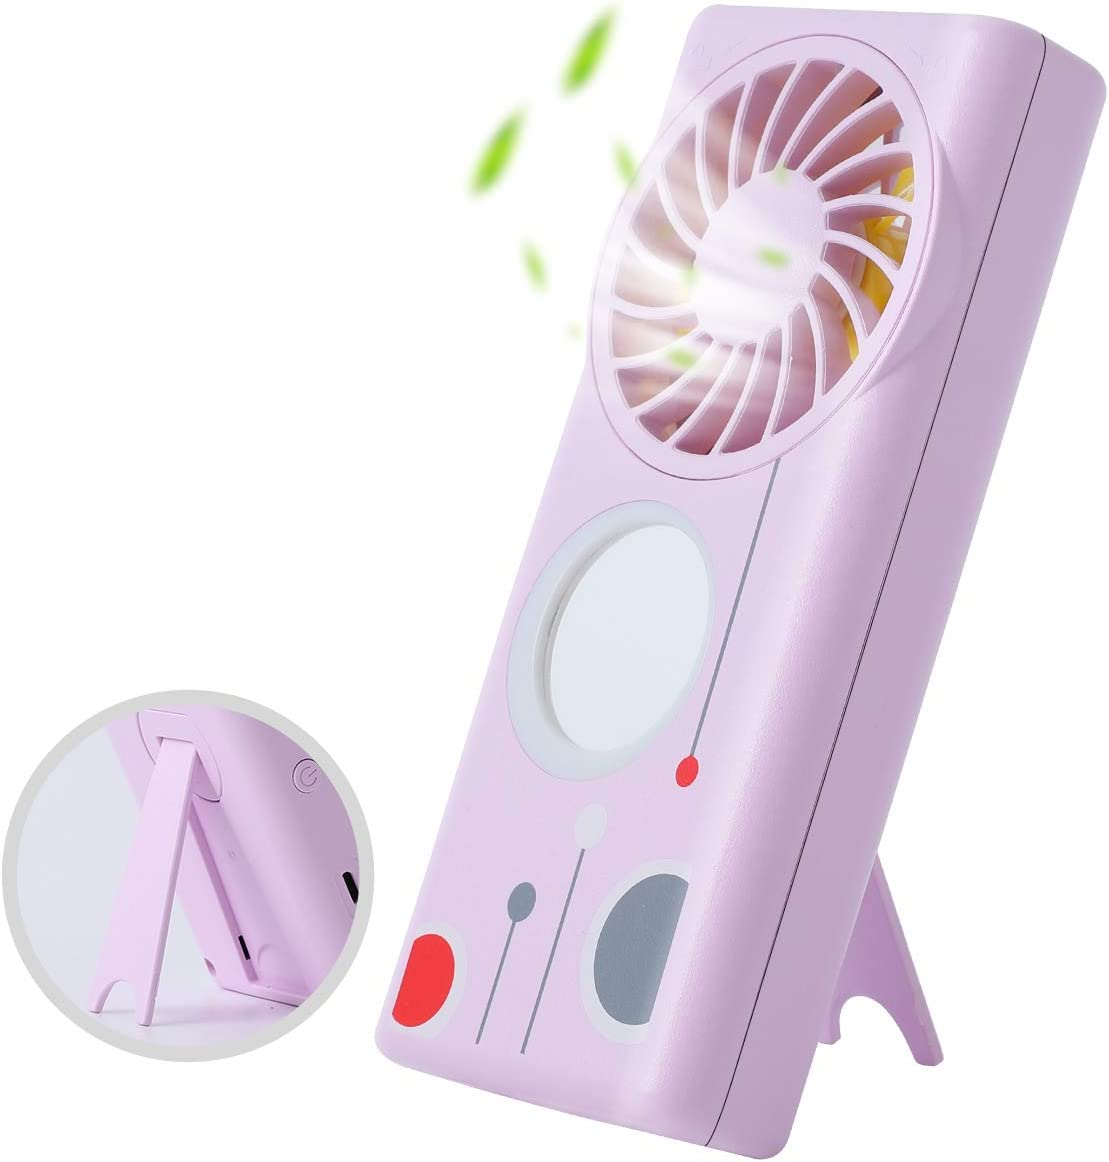 Mini Handheld Fan with Scent Airflow, Portable Desk Fan with Make-up Mirror Fill-in Light, USB Table Fan for Women for Office, Home, Outdoor,Traveling (Purple)